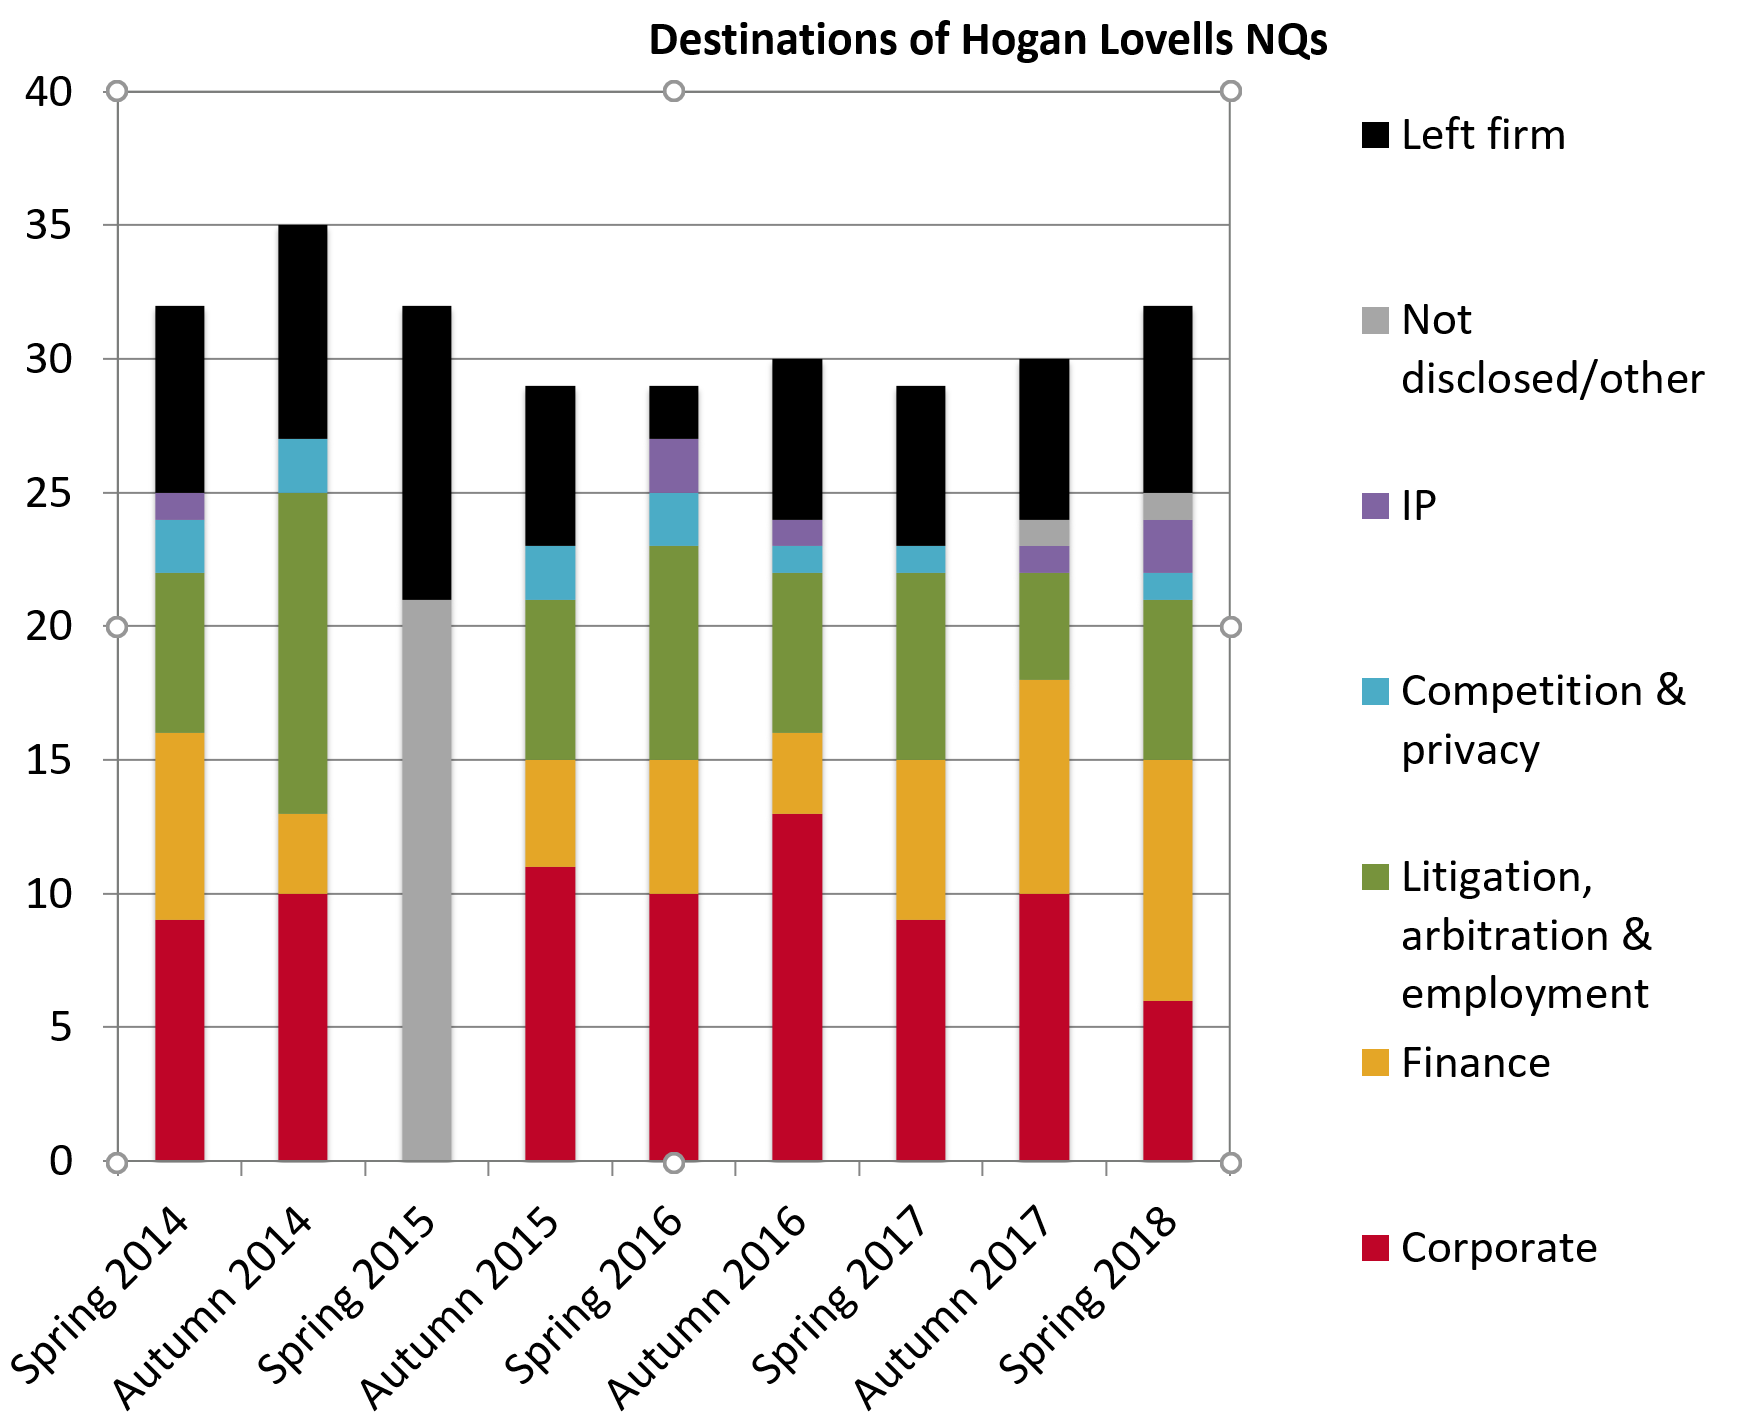 Hogan Lovells retention 2018